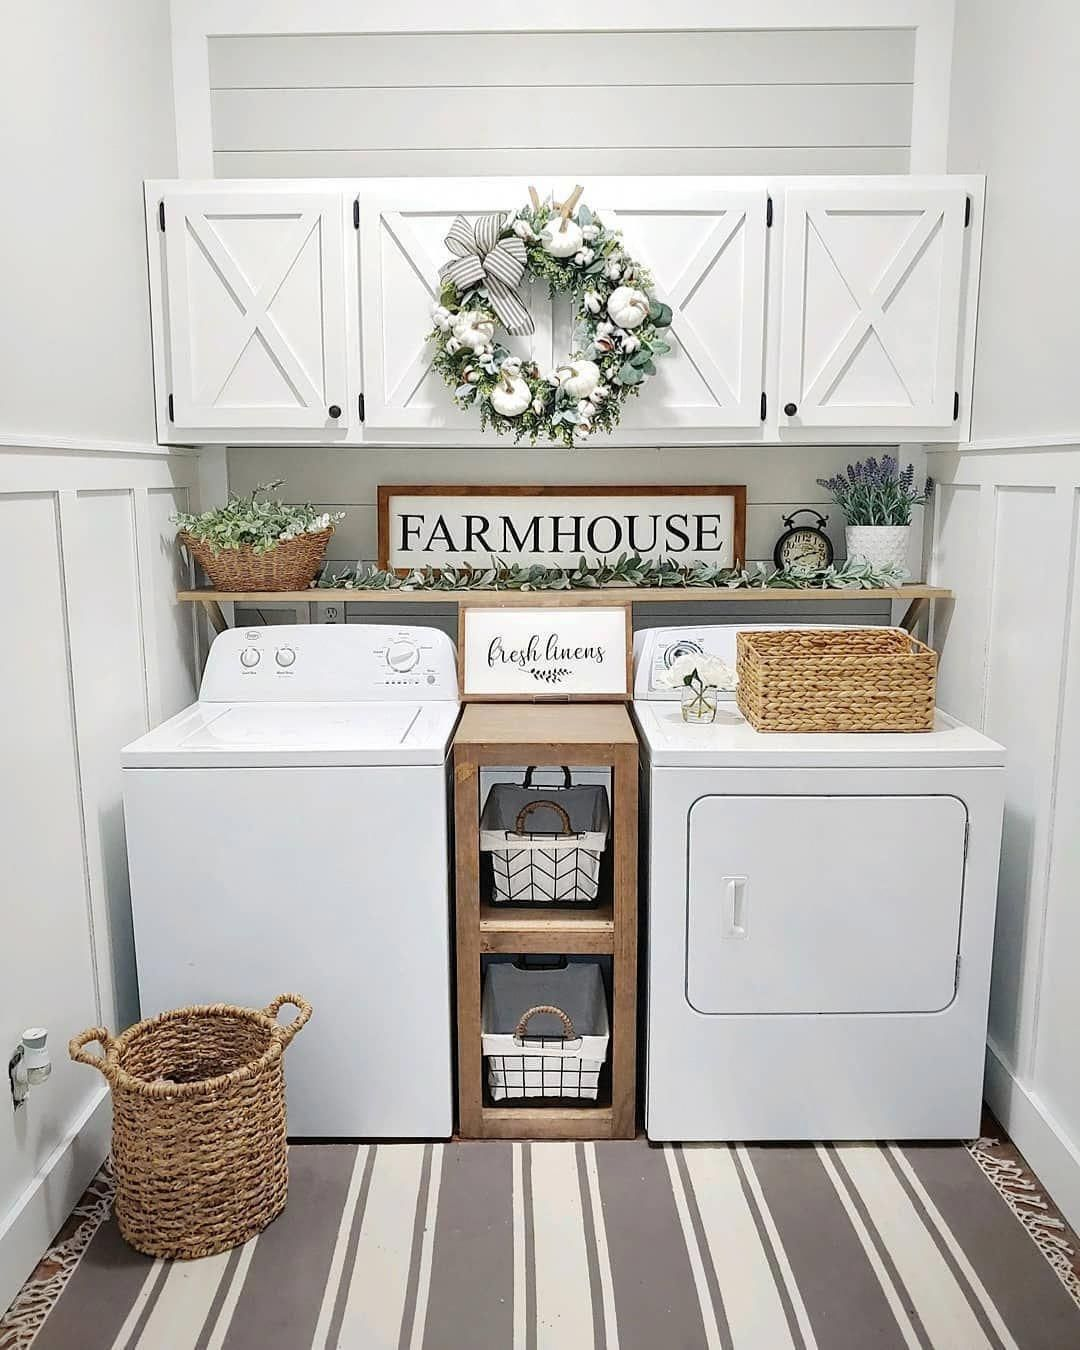 French Country Farmhouse Wall Decor Countryfarmhousedecor Laundry Room Renovation Dream Laundry Room Laundry Room Organization Storage